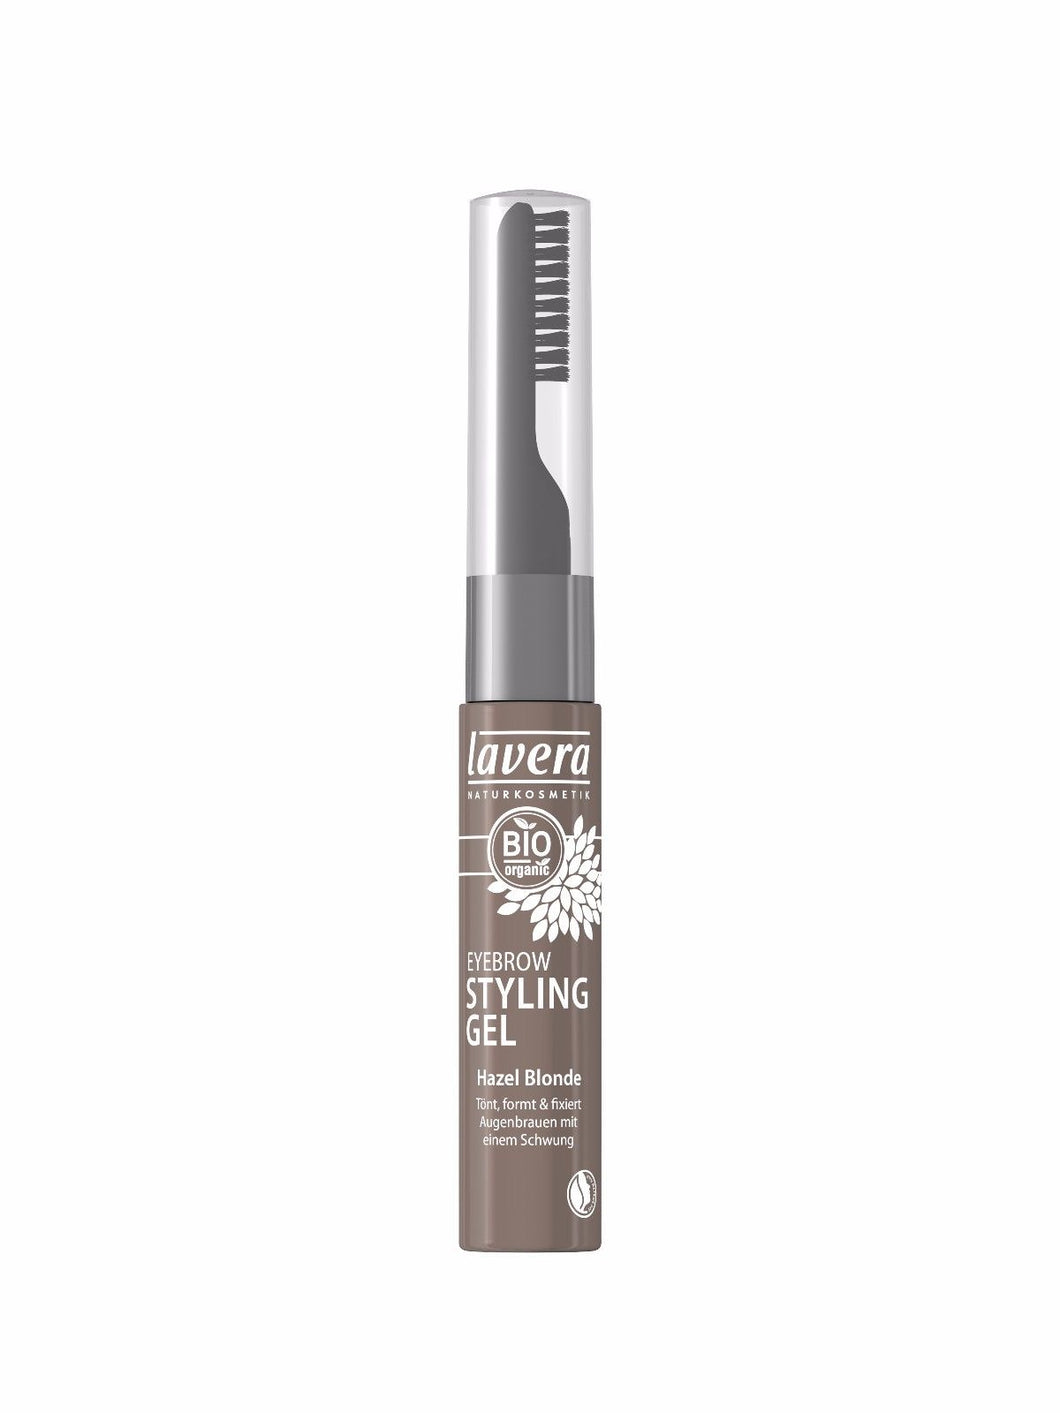 Lavera Organic Eyebrow Styling Gel 9ml - Hazel Blonde